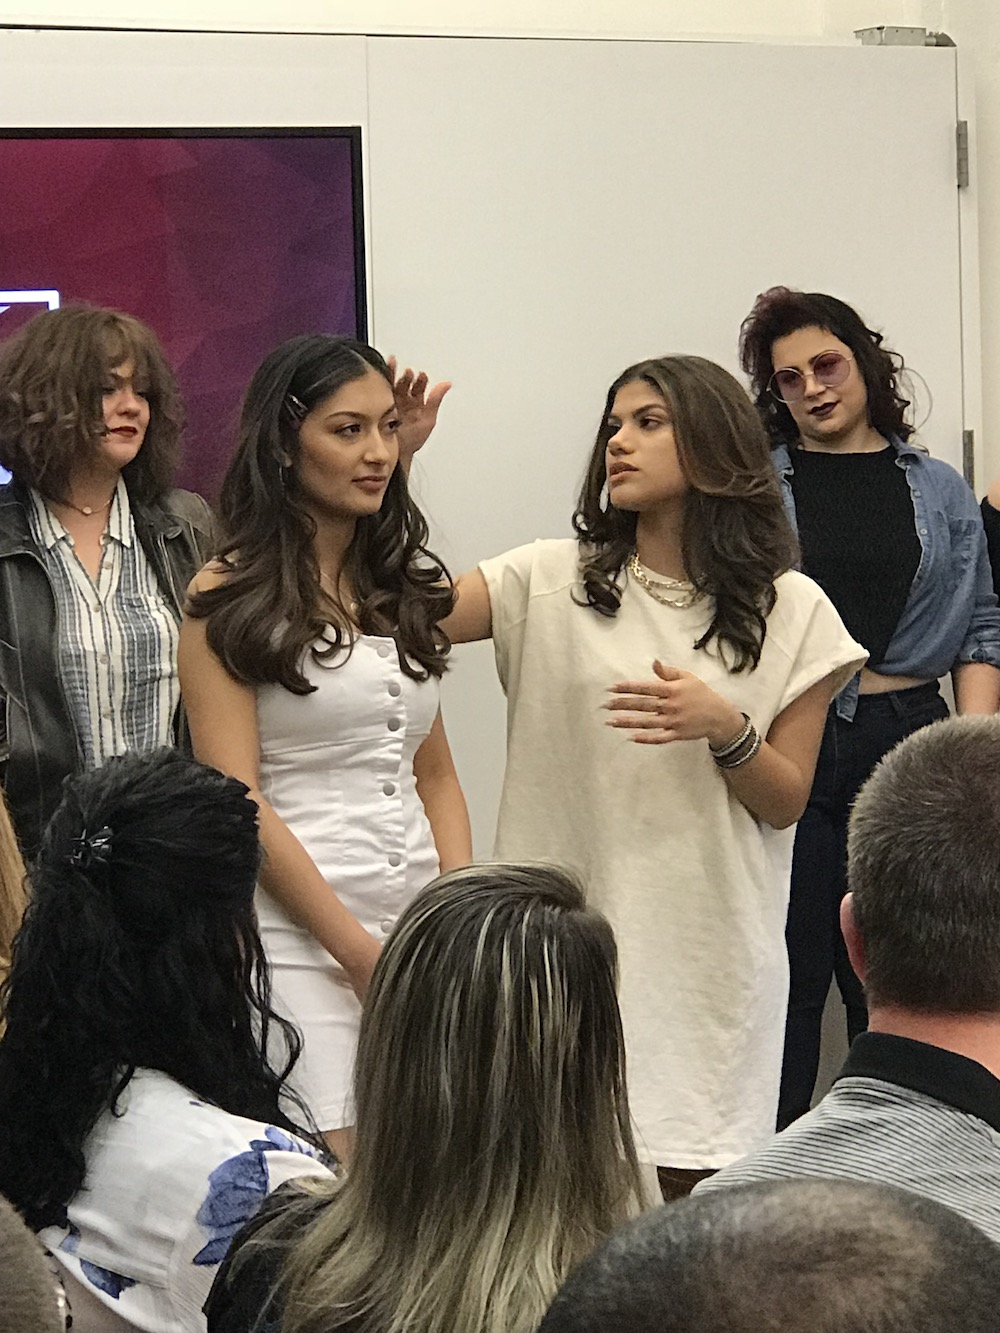 All graduates present their model to the group. It's great practice for life as a stylist!